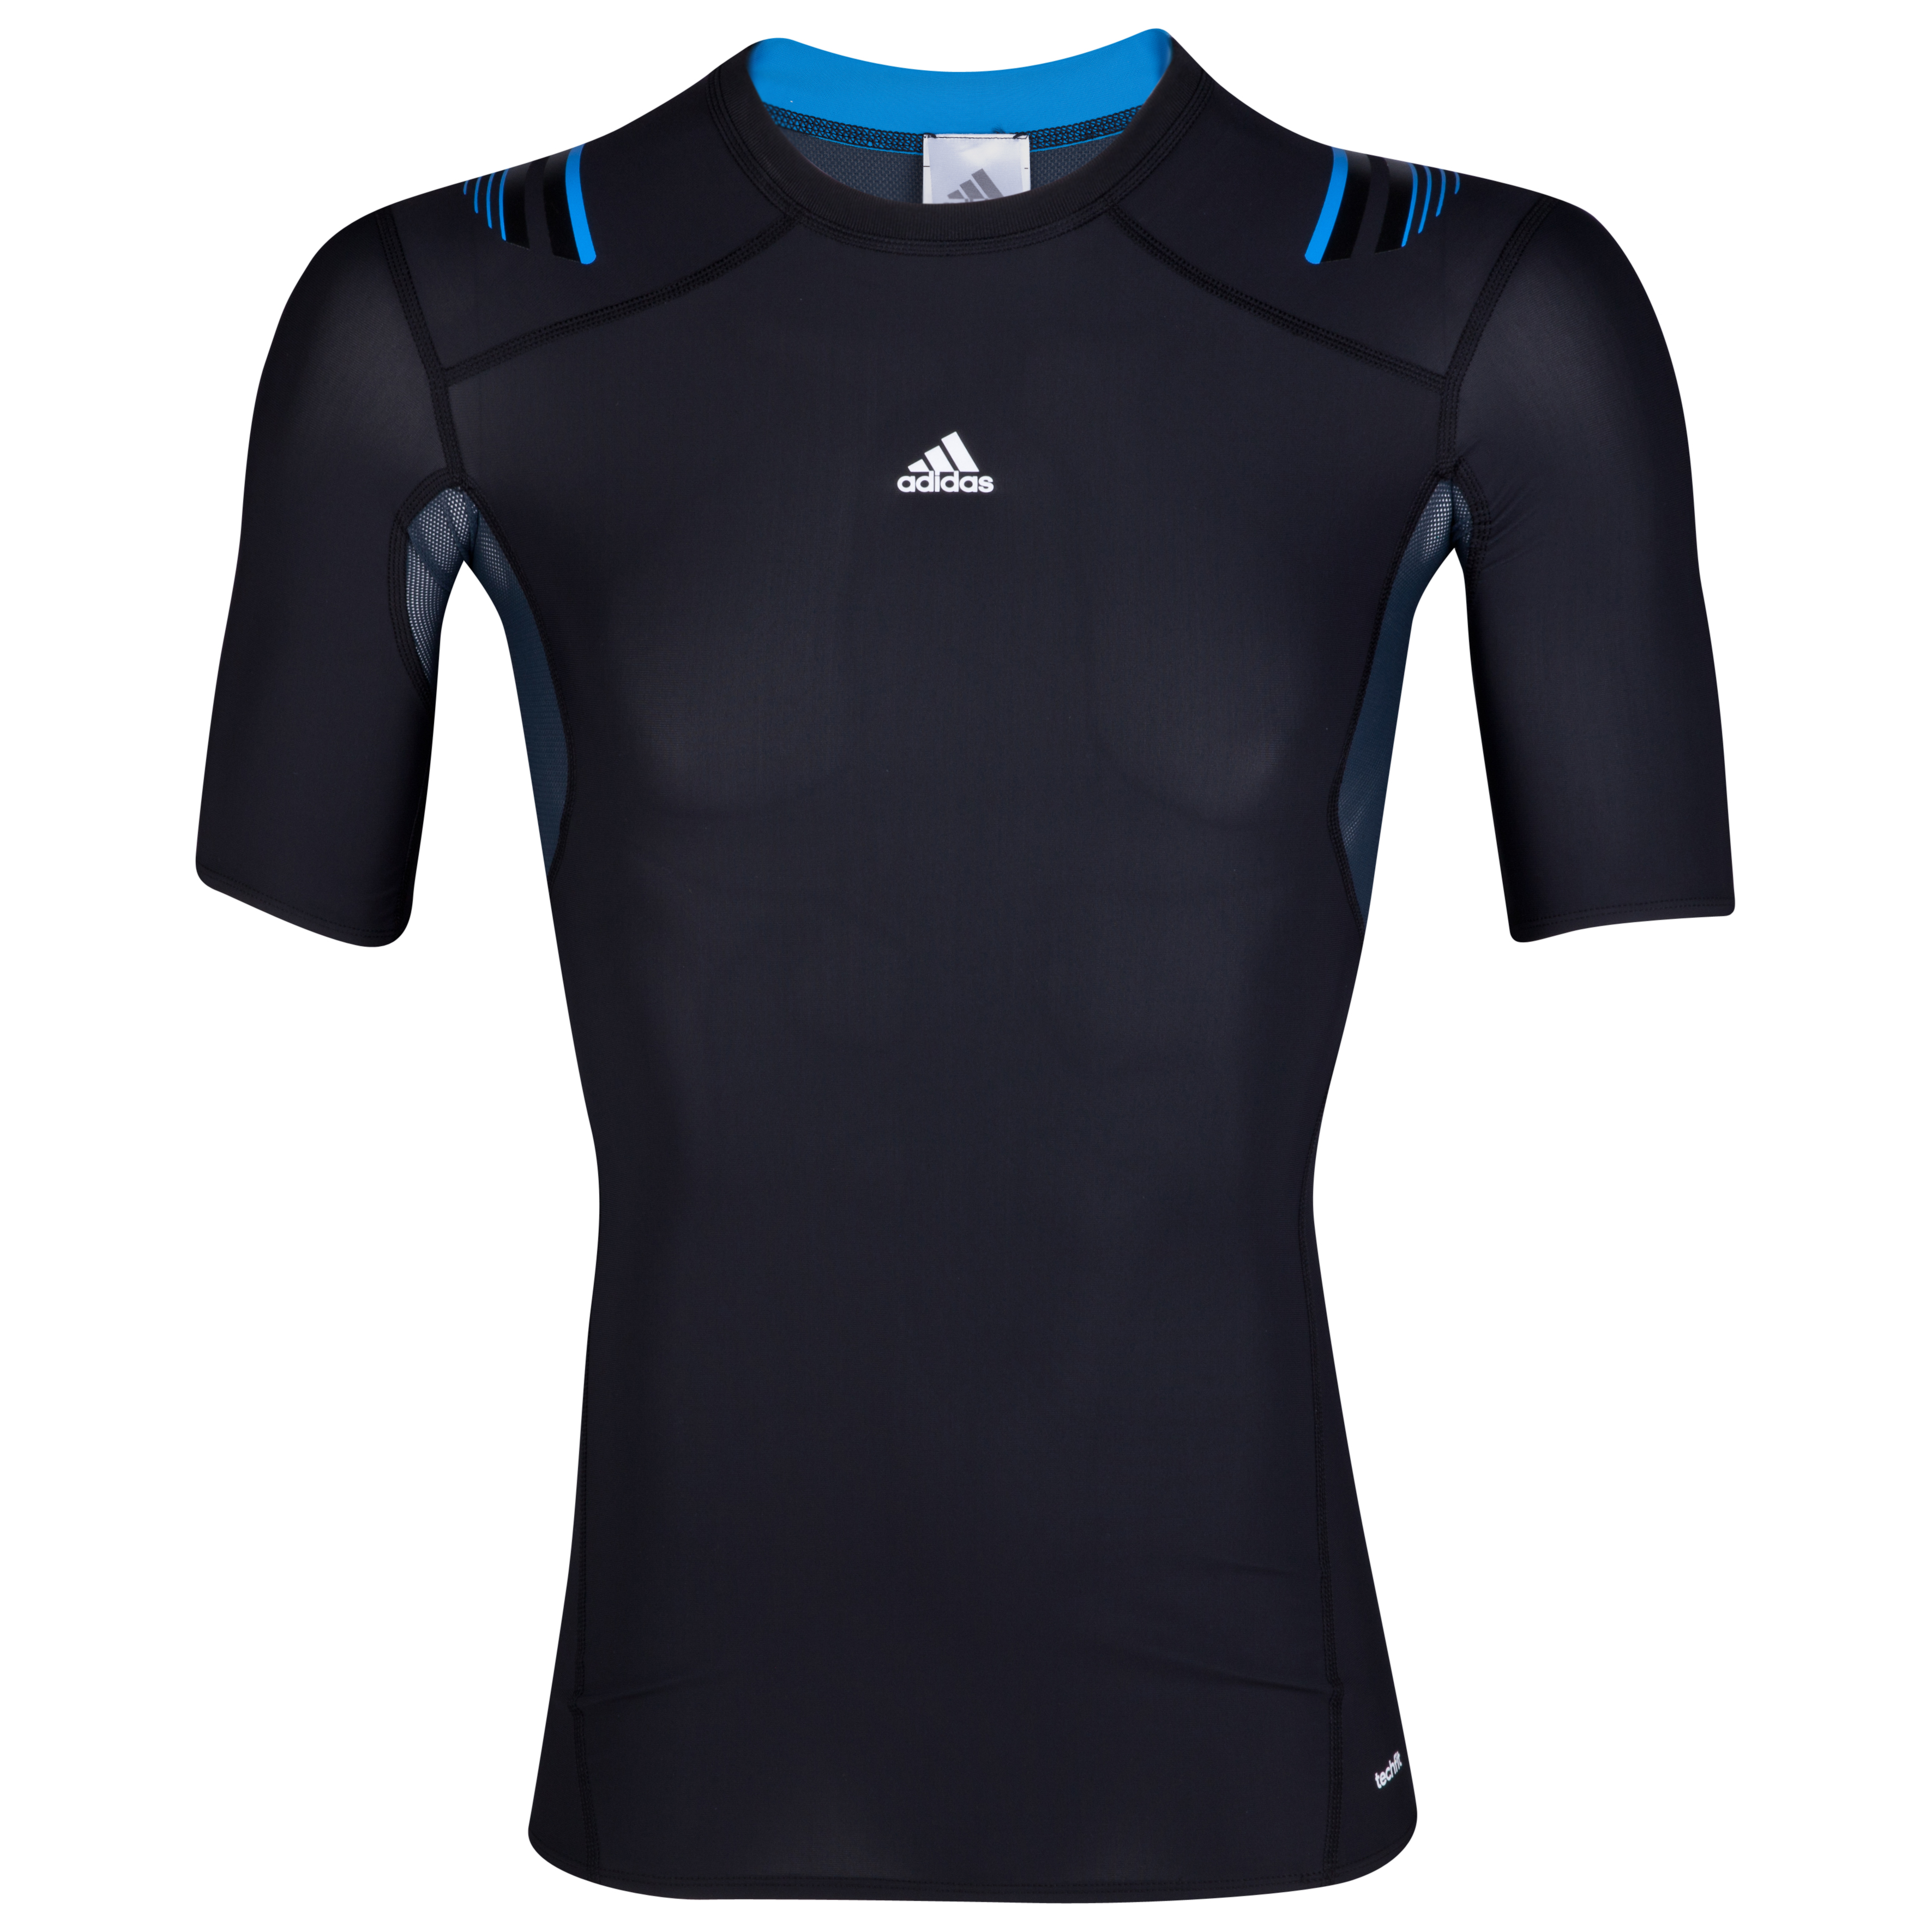 Adidas TechFit PowerWeb Top - Short Sleeve - Black